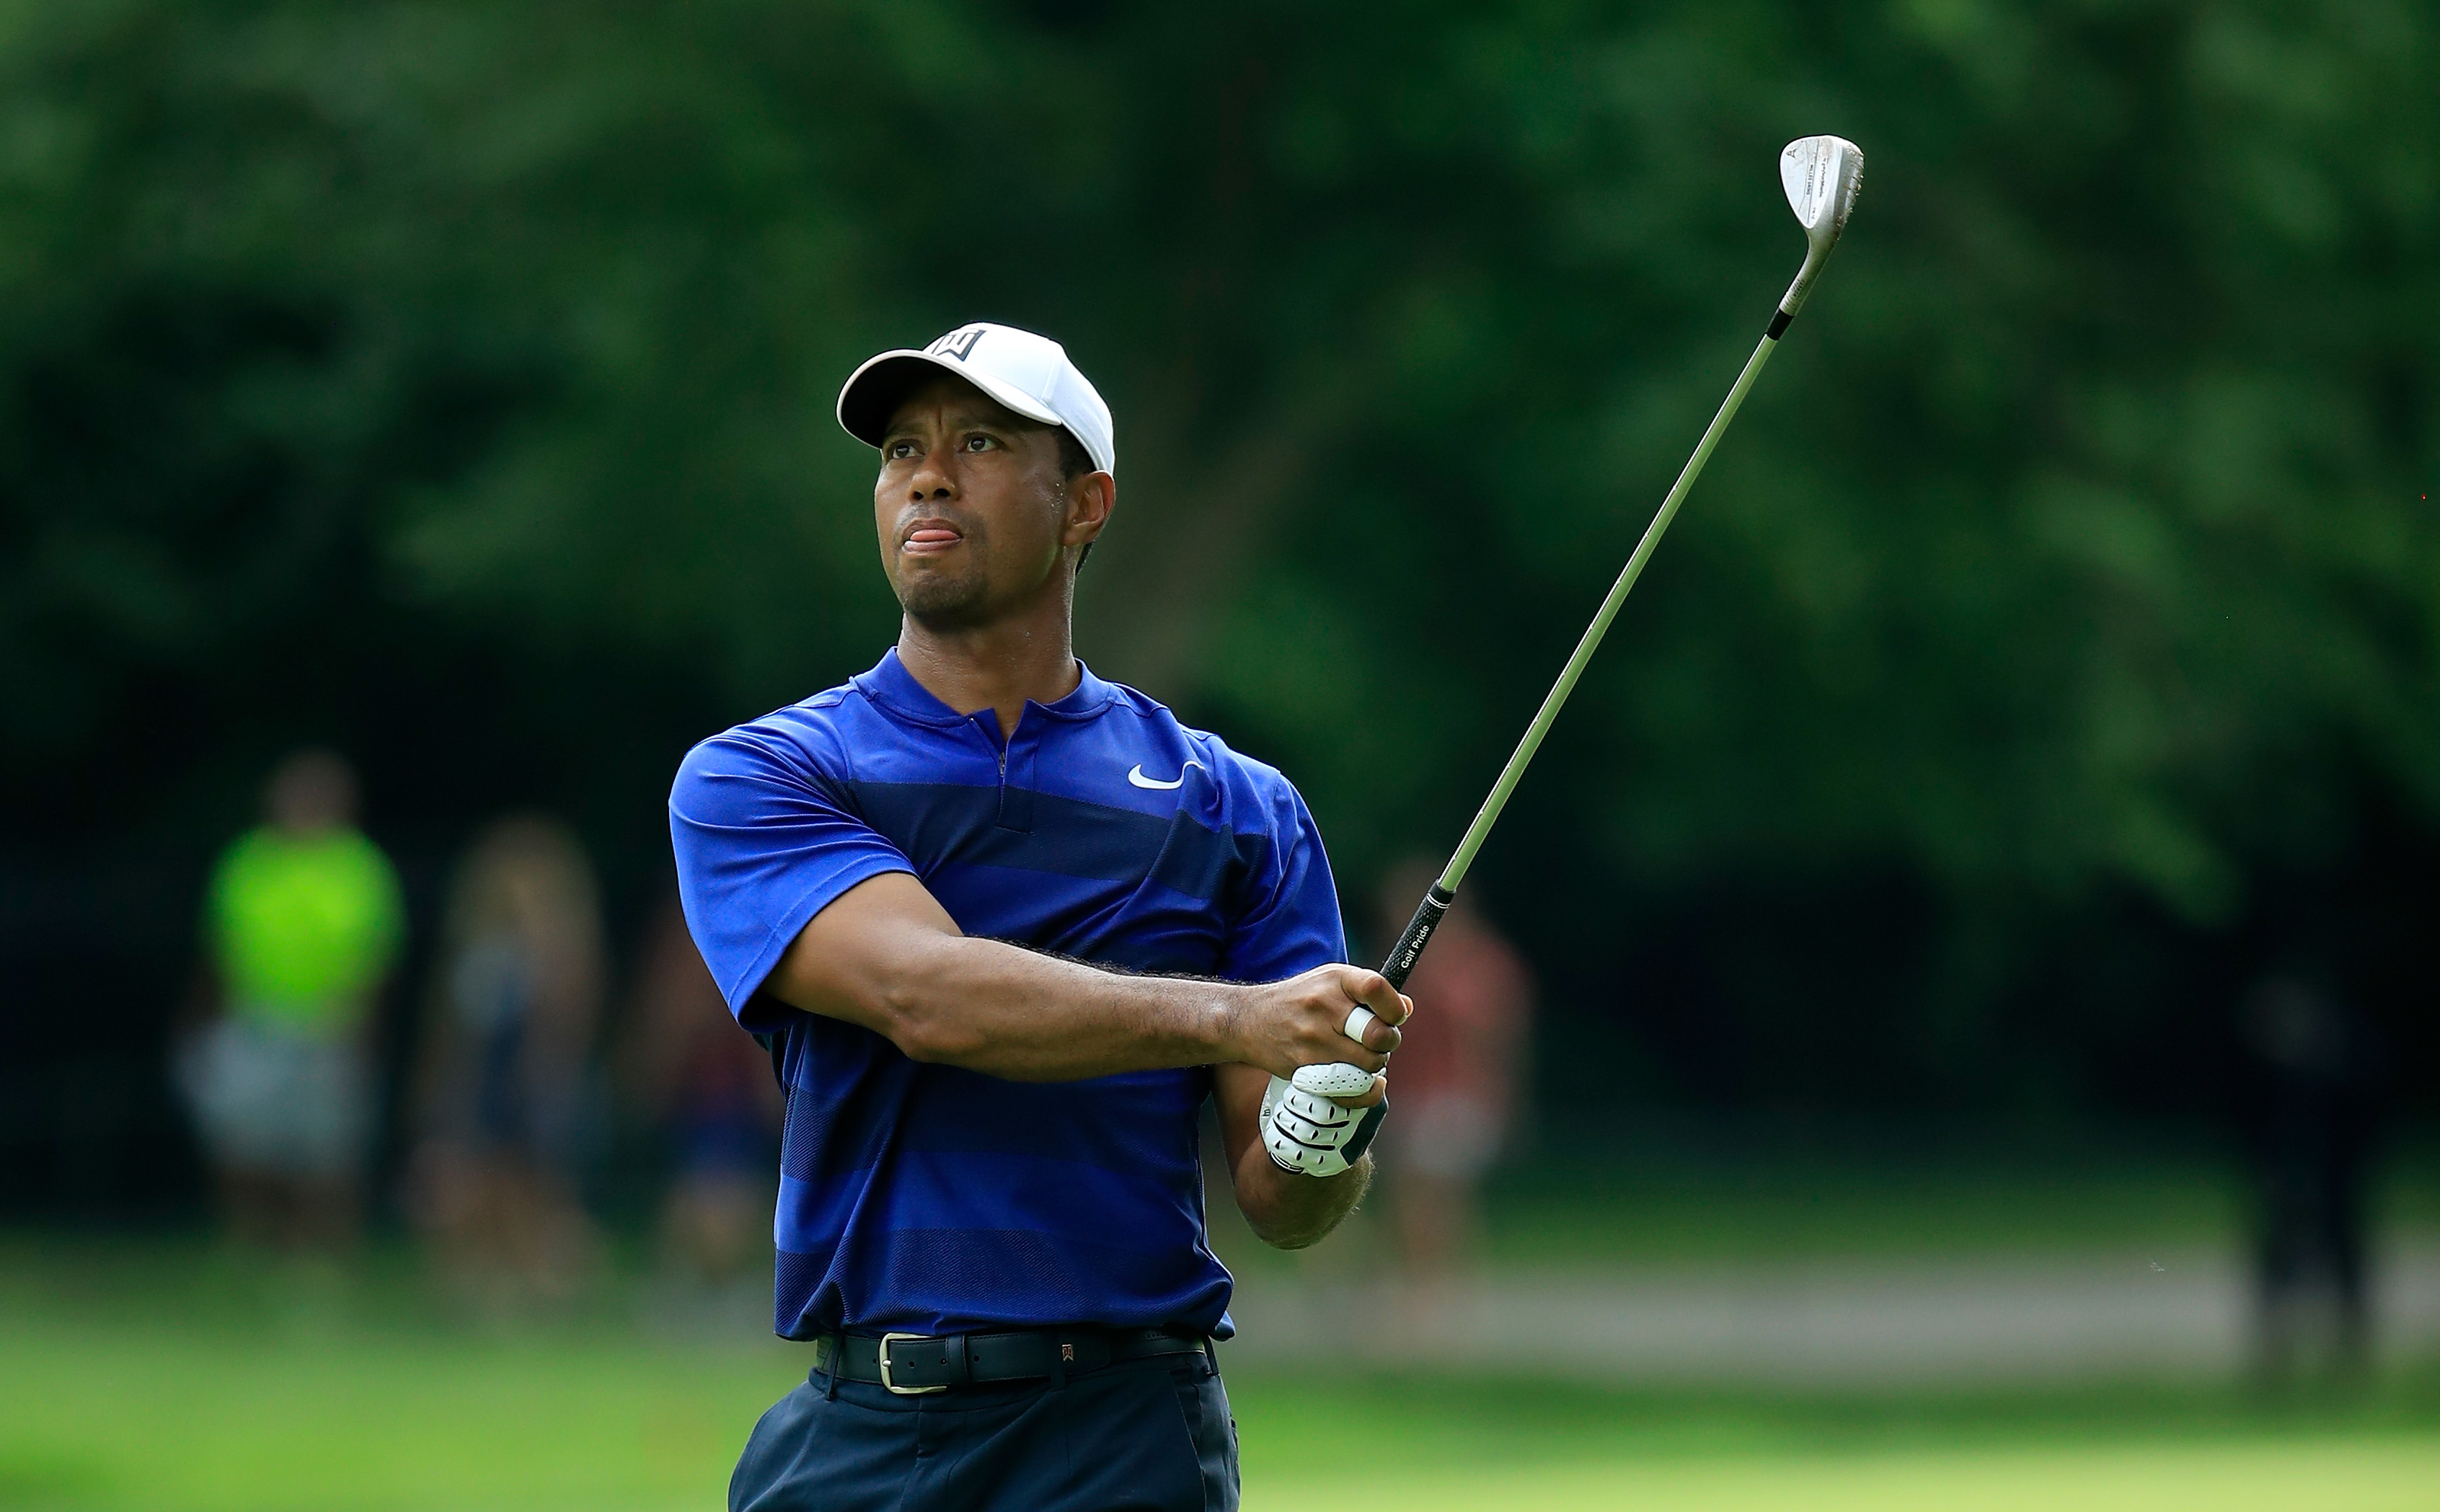 DUBLIN, OH - JUNE 01: Tiger Woods of the United States watches his second shot on the second hole during the second round of The Memorial Tournament Presented by Nationwide at Muirfield Village Golf Club on June 1, 2018 in Dublin, Ohio. (Photo by Andy Lyons/Getty Images)